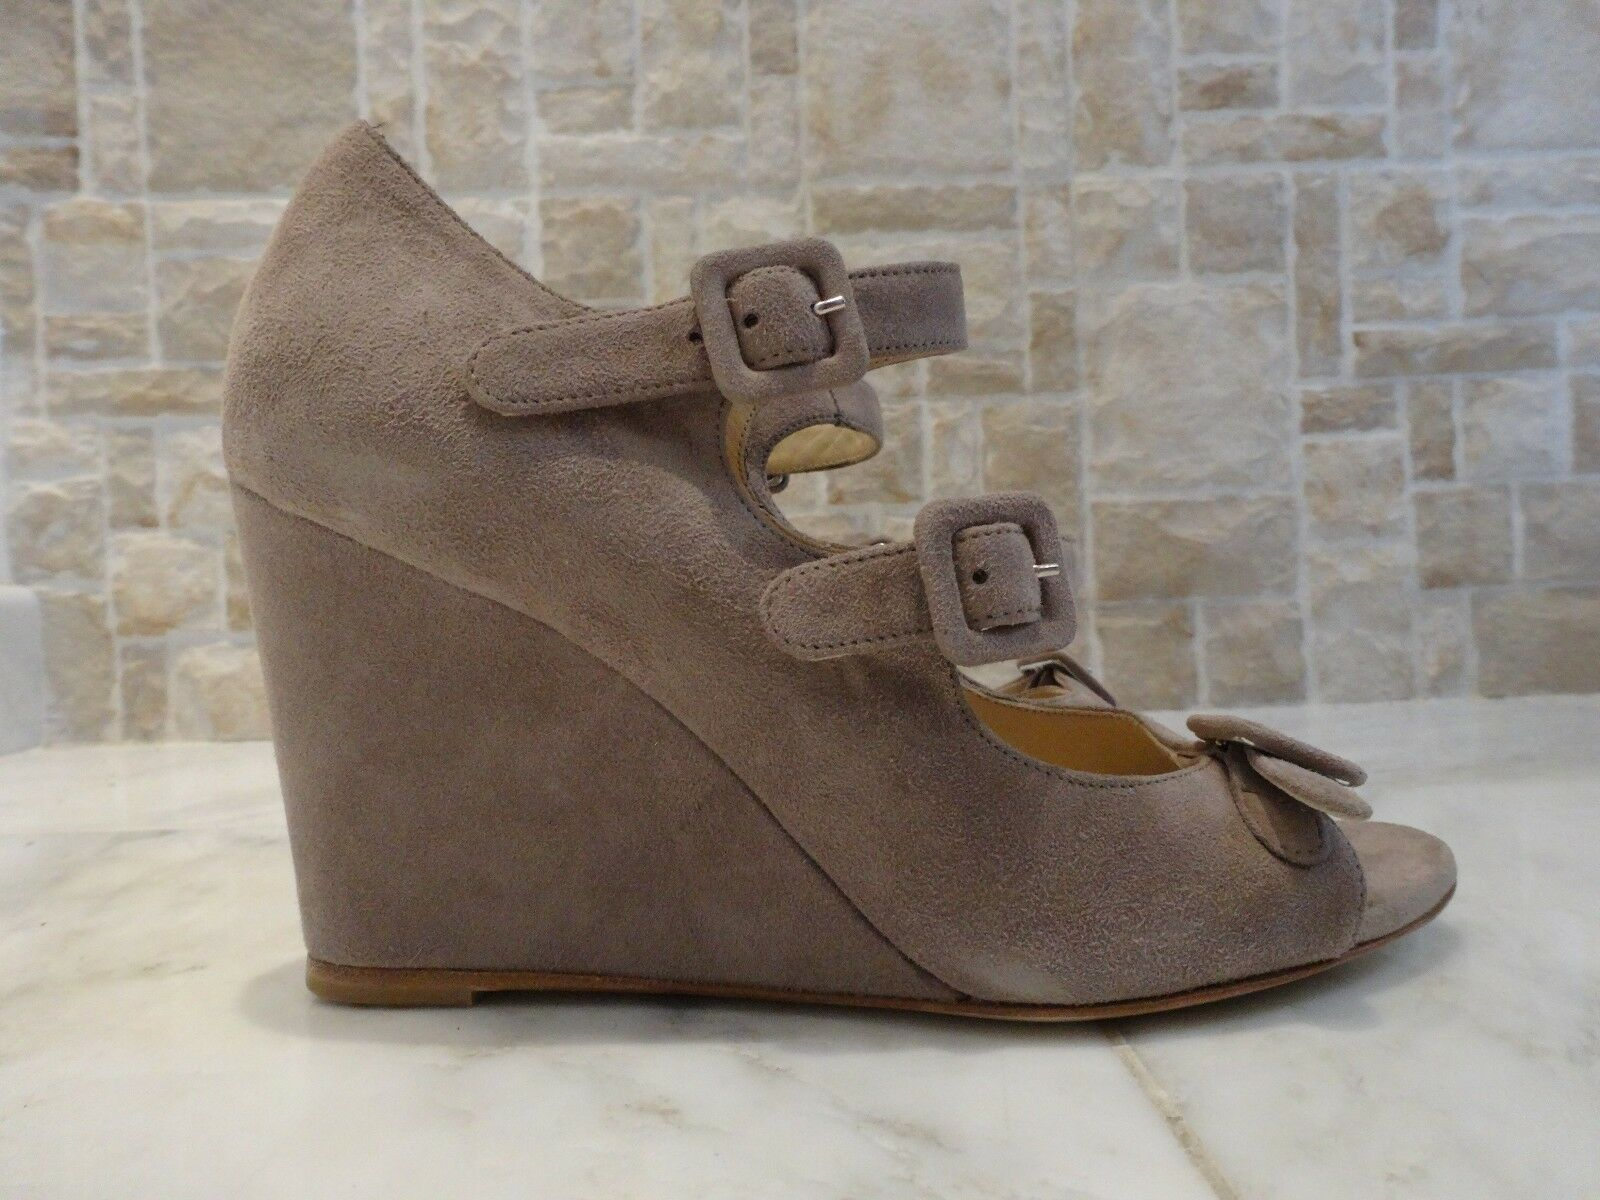 Marvin K. Suede Gray Wedge Shoes US-7M EUR-37M MSRP 8 Made in Italy